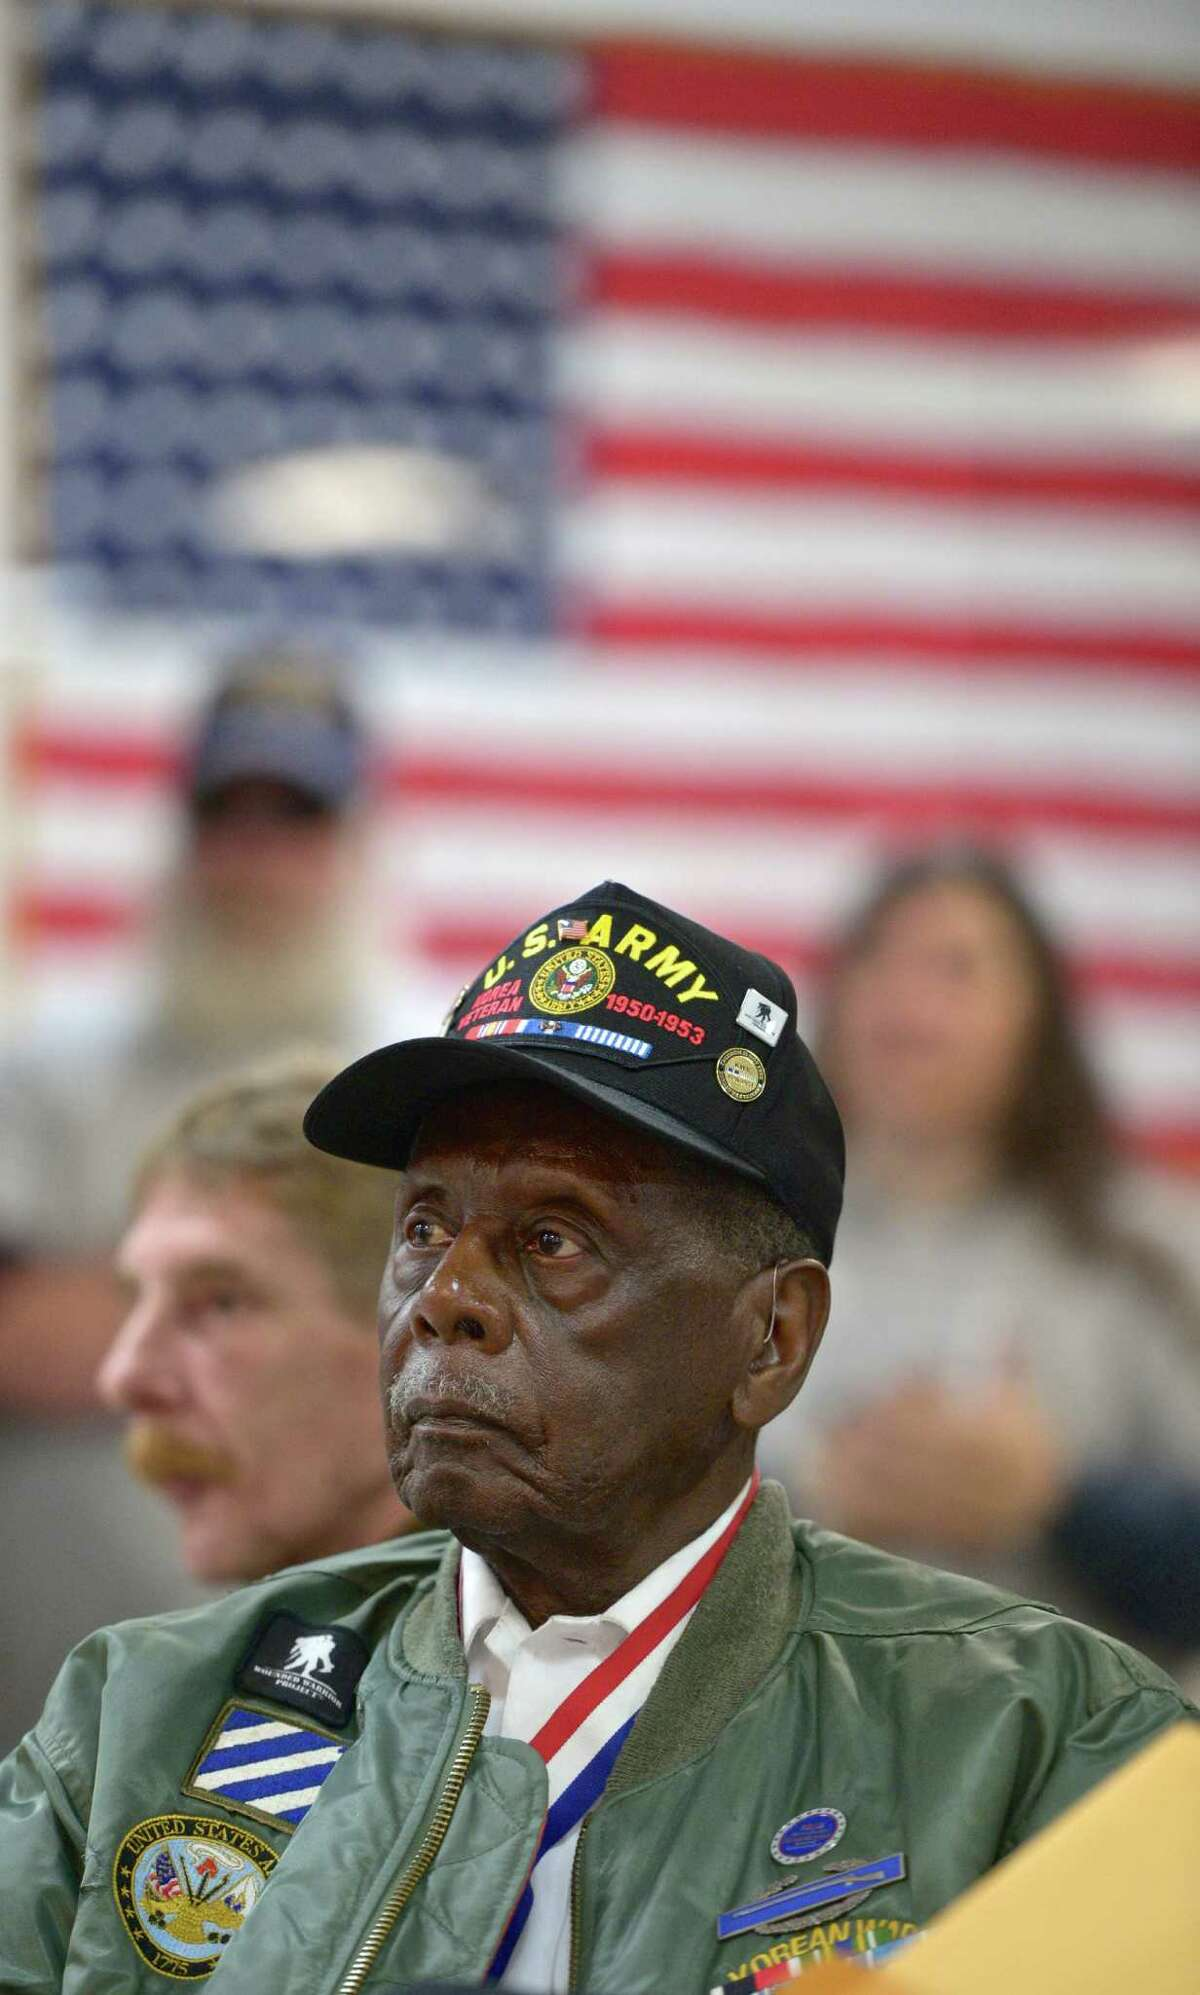 Herman Iczard, of New Milford, listens to a speech during the New Milford Veterans Day Memorial Service held at VFW Post 167211, on Avery Road, in New Milford Wednesday. Iczard served in the Army during the Korean War.